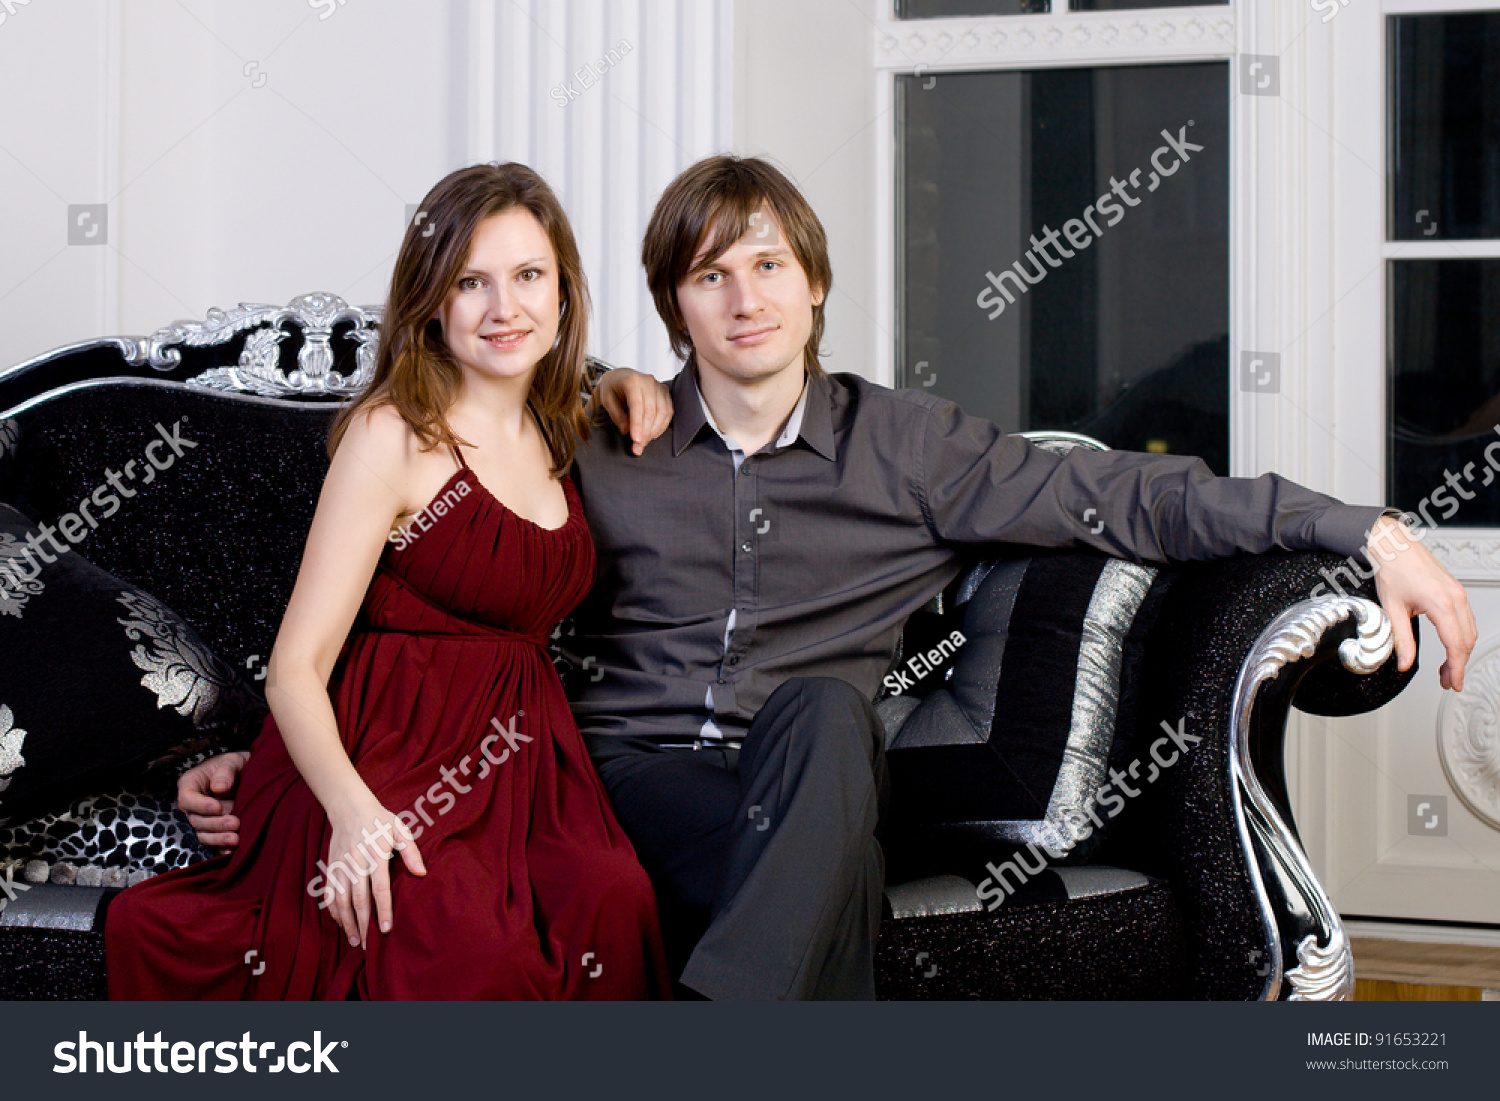 54dc889af922e Portrait of a young couple in elegant evening dresses sitting on vintage  chair